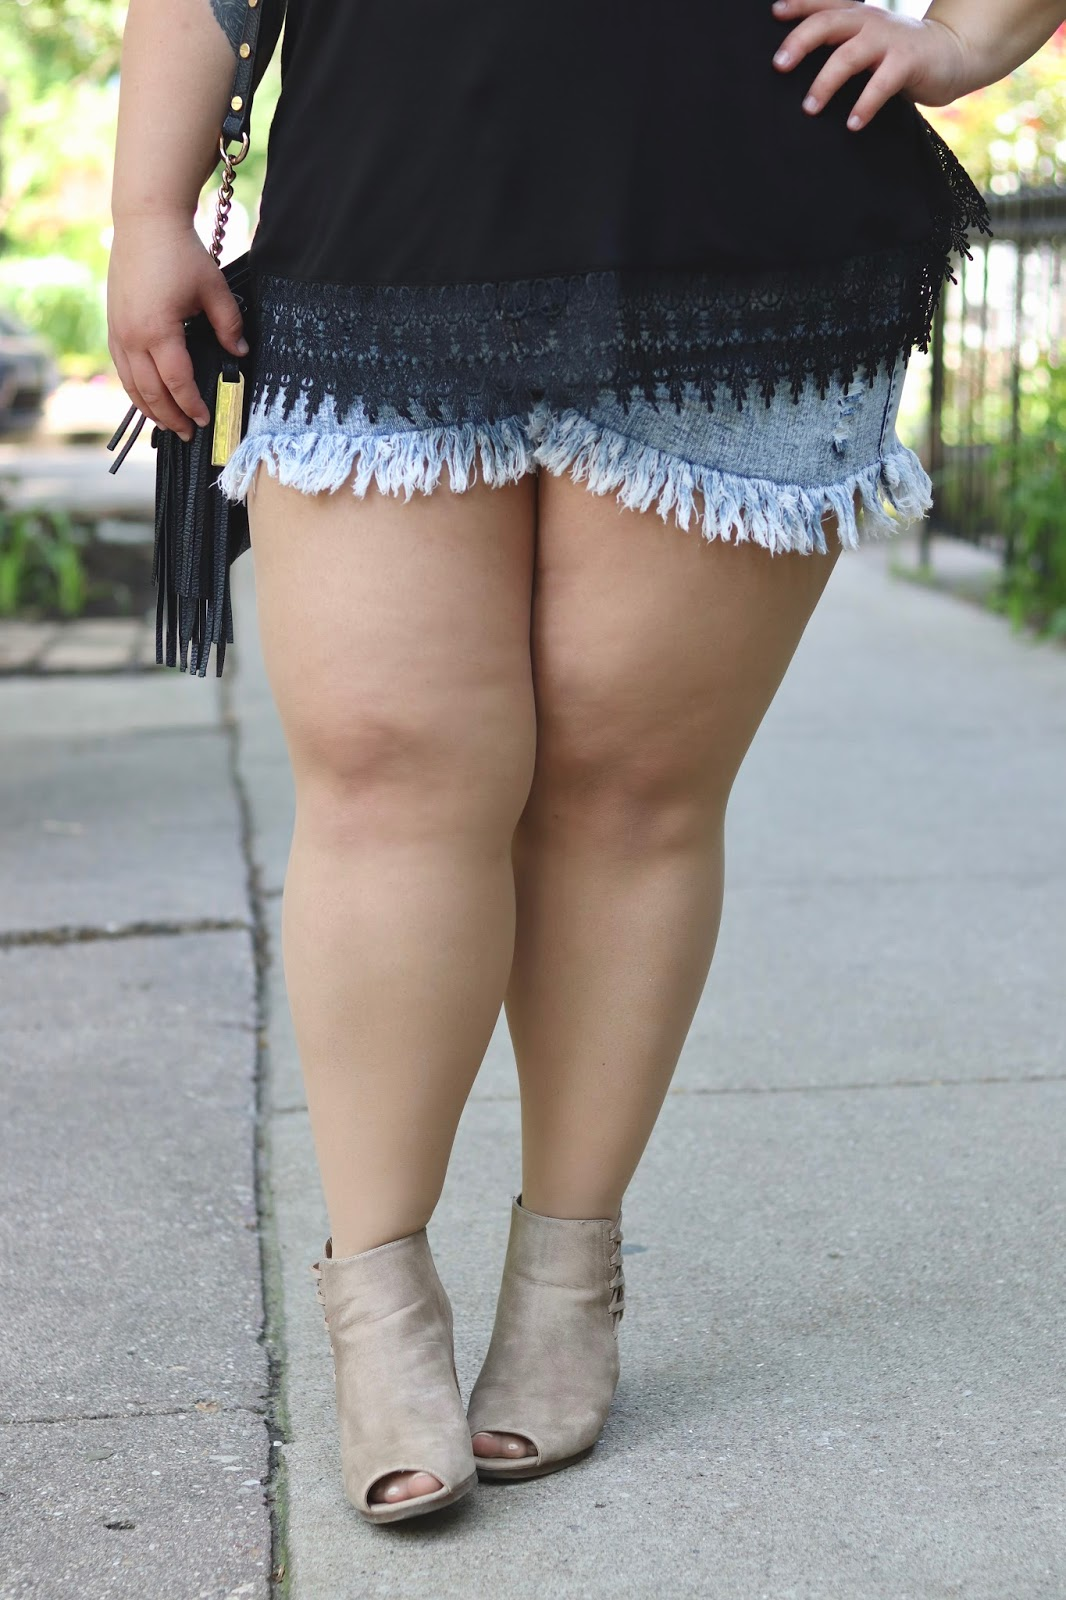 natalie in the city, how to stop chub rub, chub rub, my thighs rub together, plus size shorts, fringe shorts, forever 21 plus, affordable plus size clothes, plus size fashion, plus size fashion blogger, Chicago blogger, midwest blogger, natalie craig, fatshion, curves and confidence, eff your beauty standards, embrace my curves, summer plus size